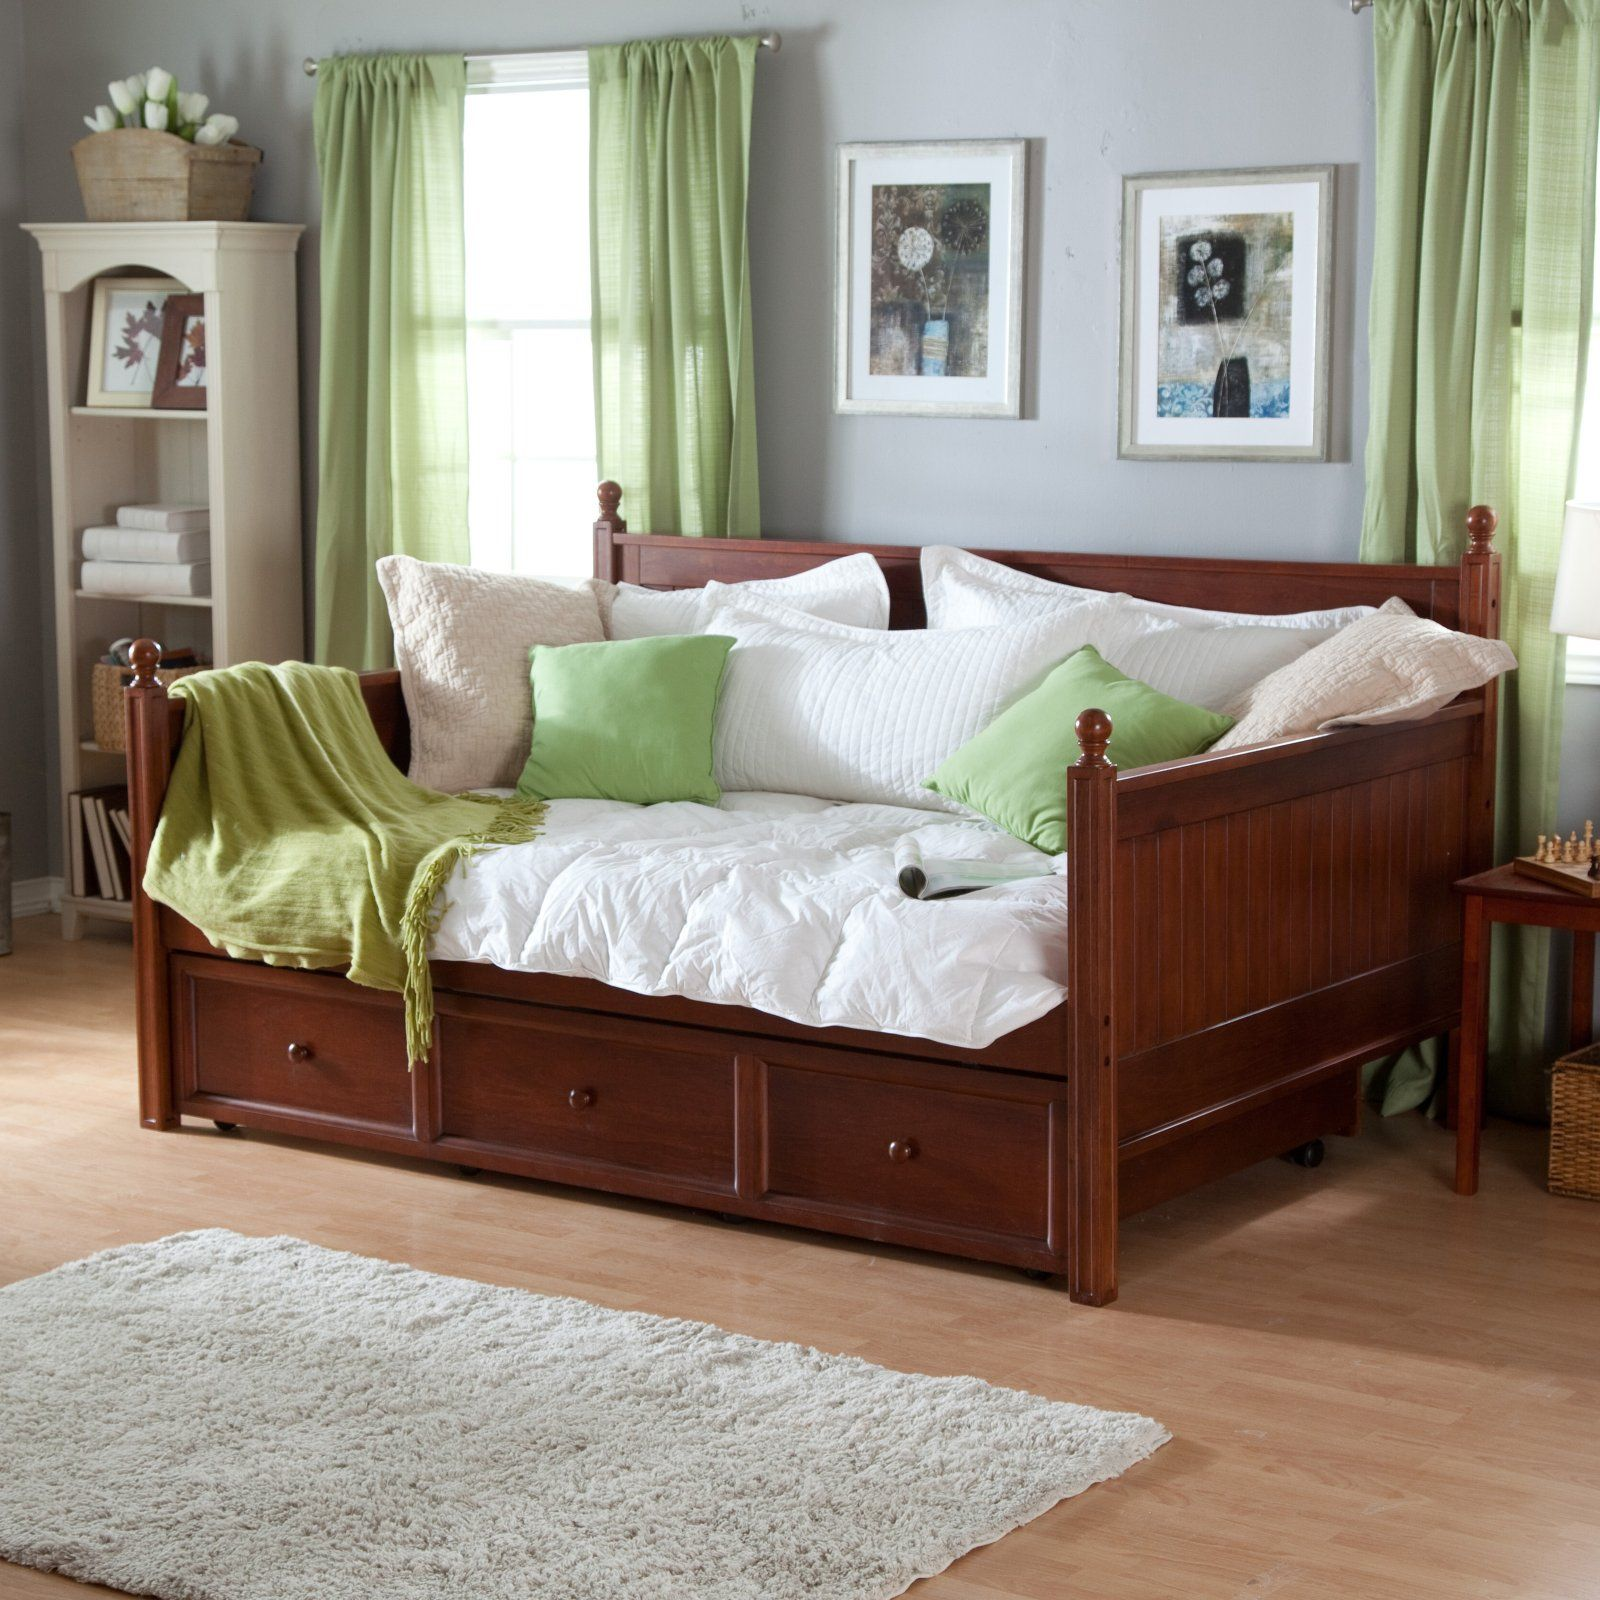 849.99 FULL size daybed with optional trundle! Casey